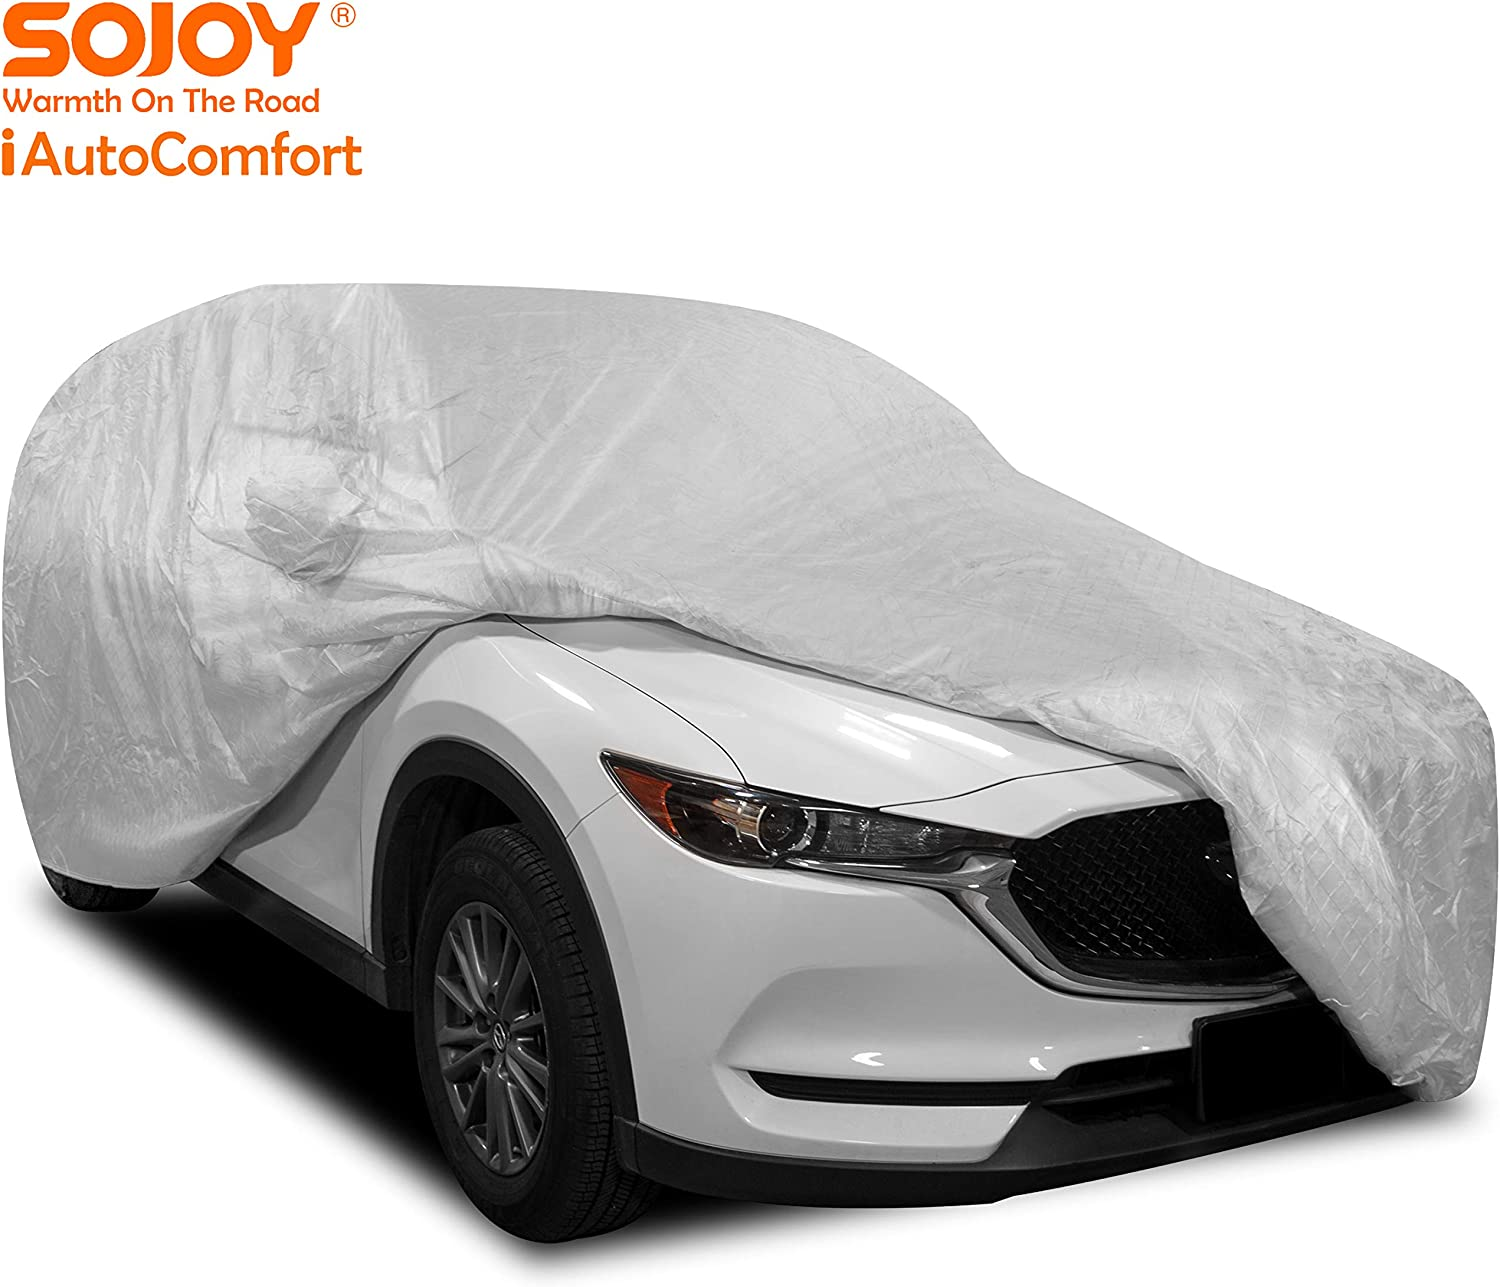 Hail//Rain//Snow//Heat Hatchback in All-Weather Coupe Sojoy Thick Multi-Layered Car Cover Anti-Hail Damage for Sedan XXL+ SUV Waterproof//Dustproof//Scratchproof UV Protection Full Cover